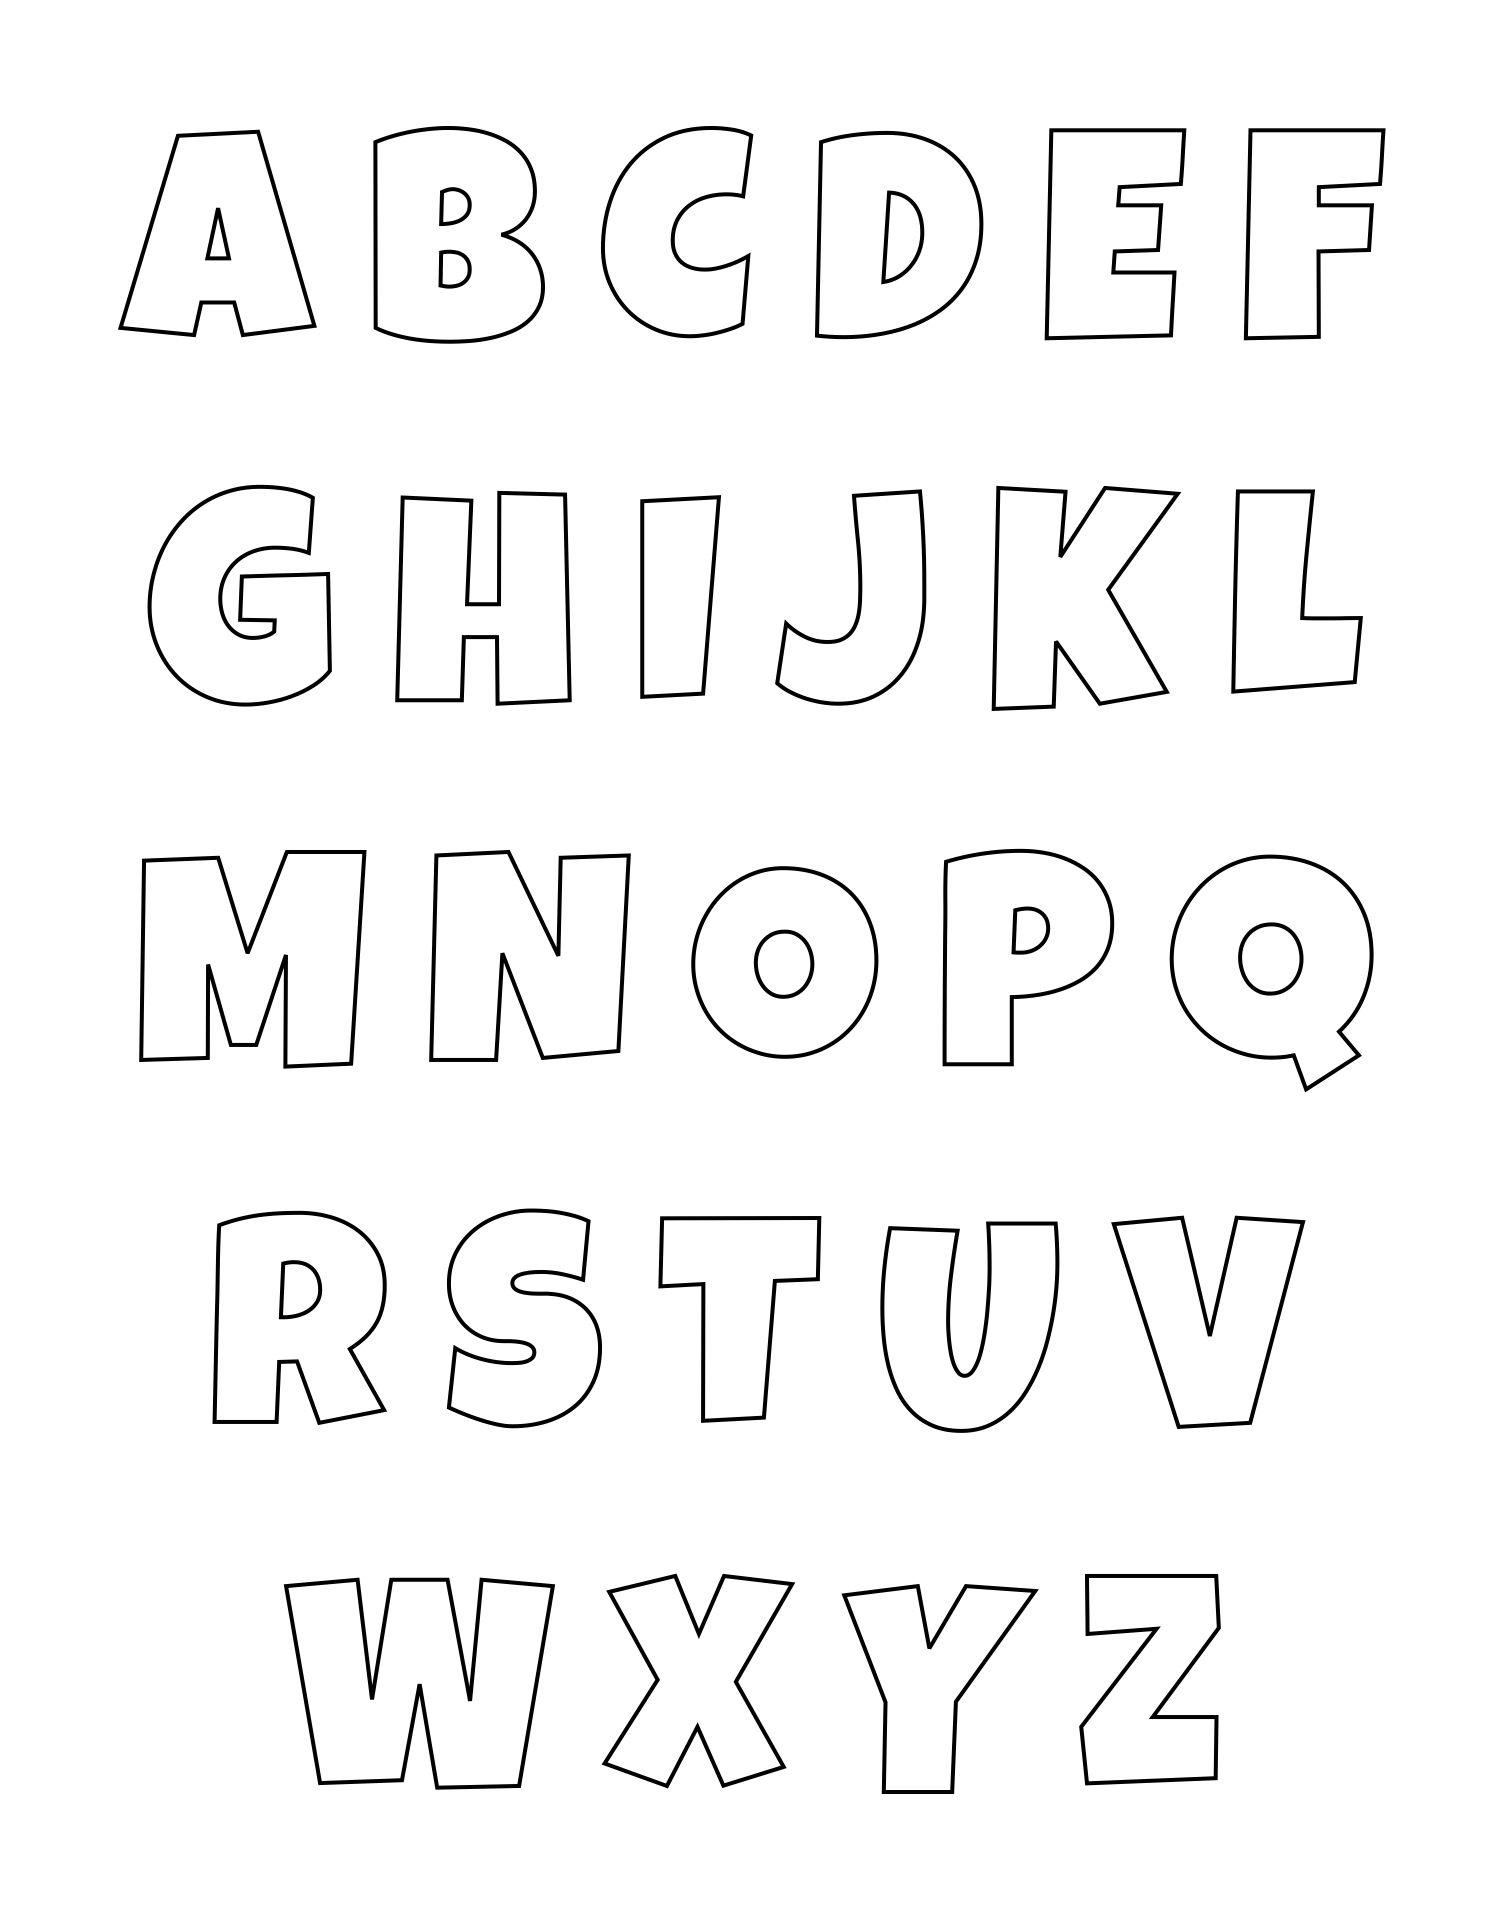 2-inch-printable-block-letters_328221  Inch Letter Templates on basic cover, sample request, sample business,